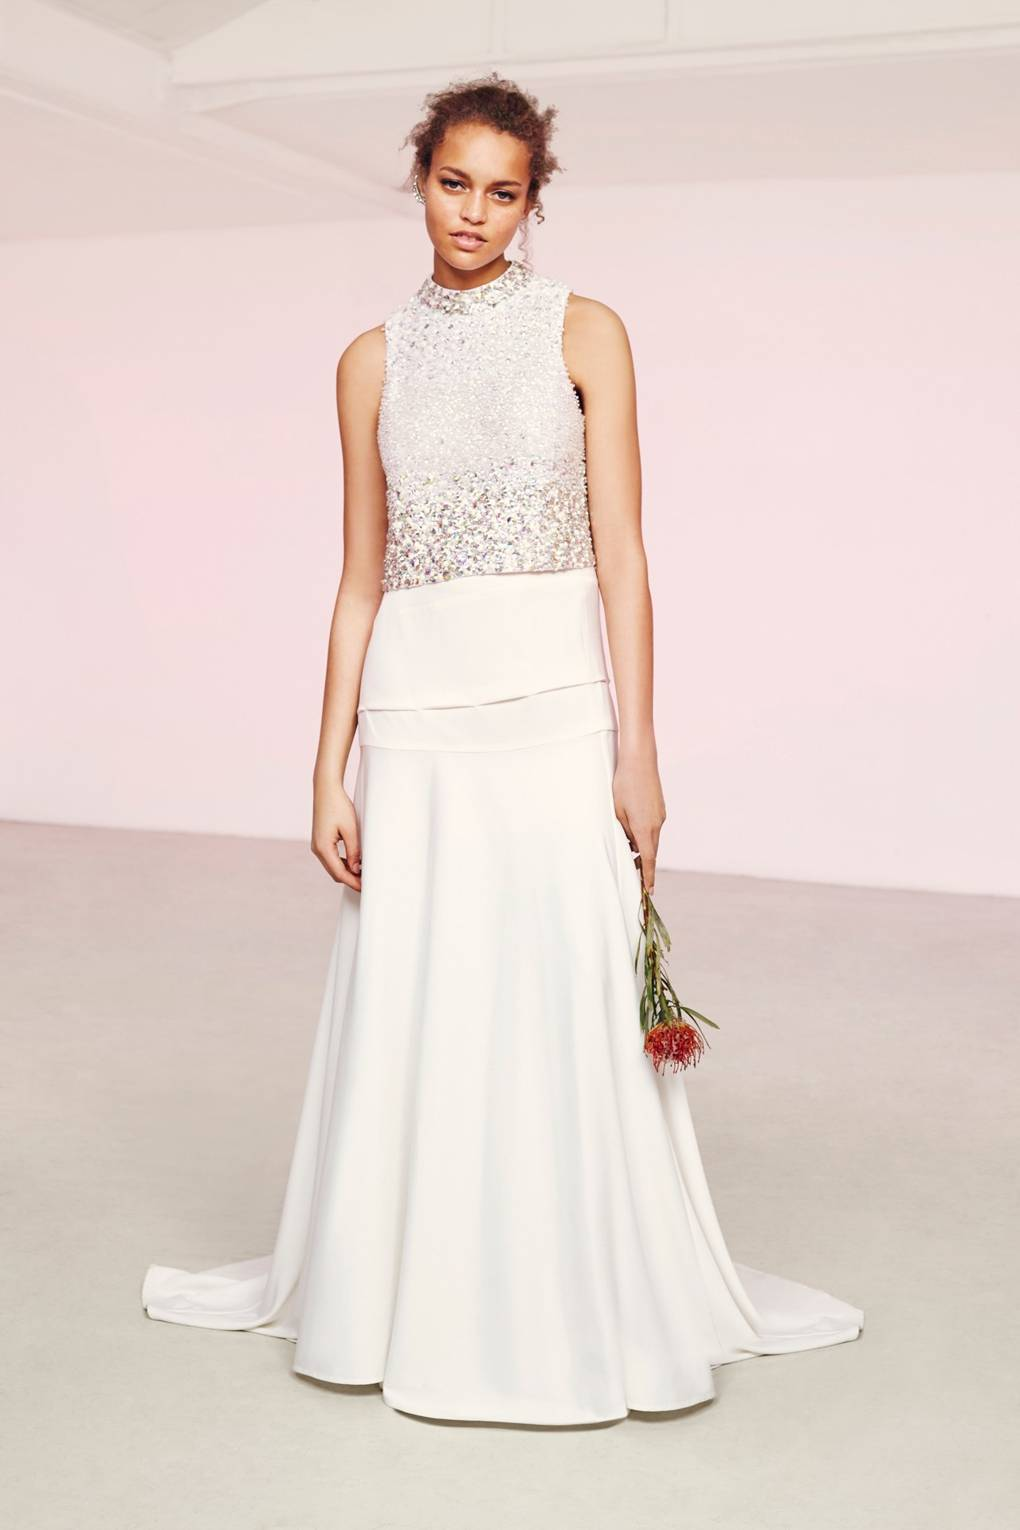 Exclusive First Look Full ASOS Bridal Collection Available | British ...